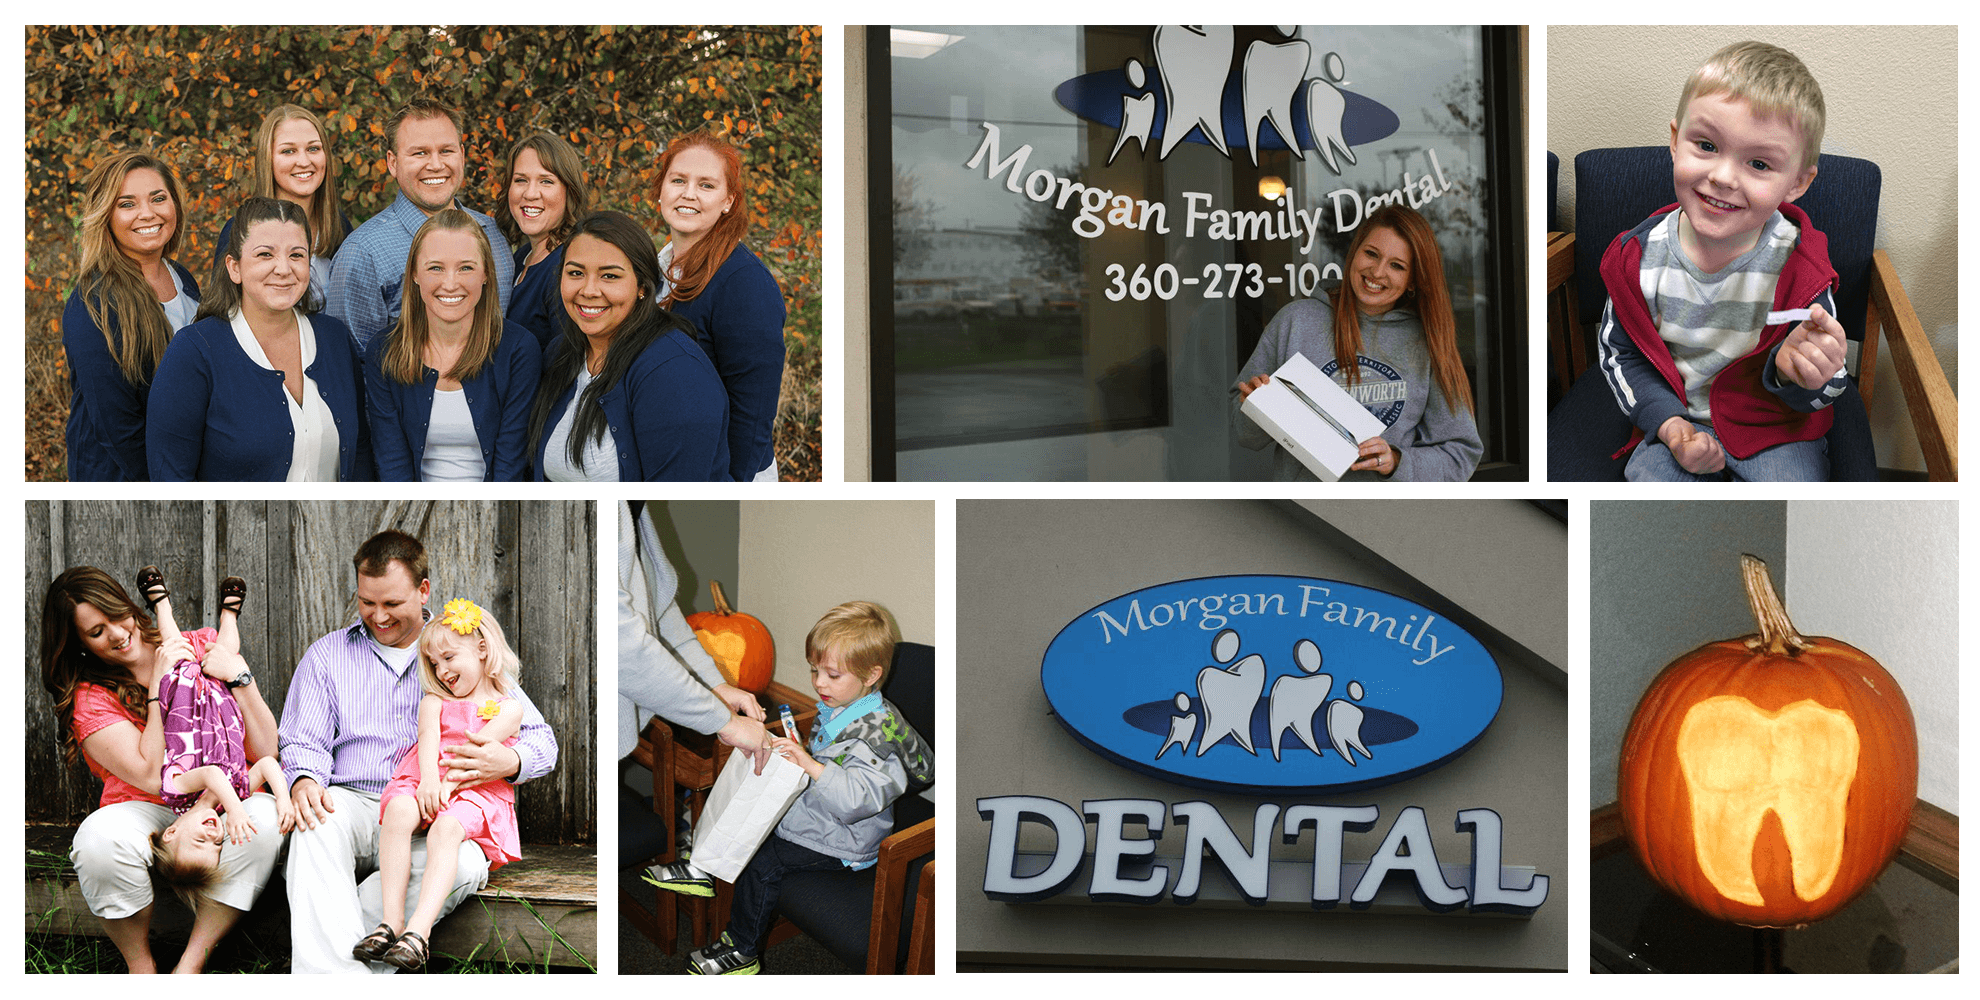 Many photos of the Morgan Family Dental team out in the community